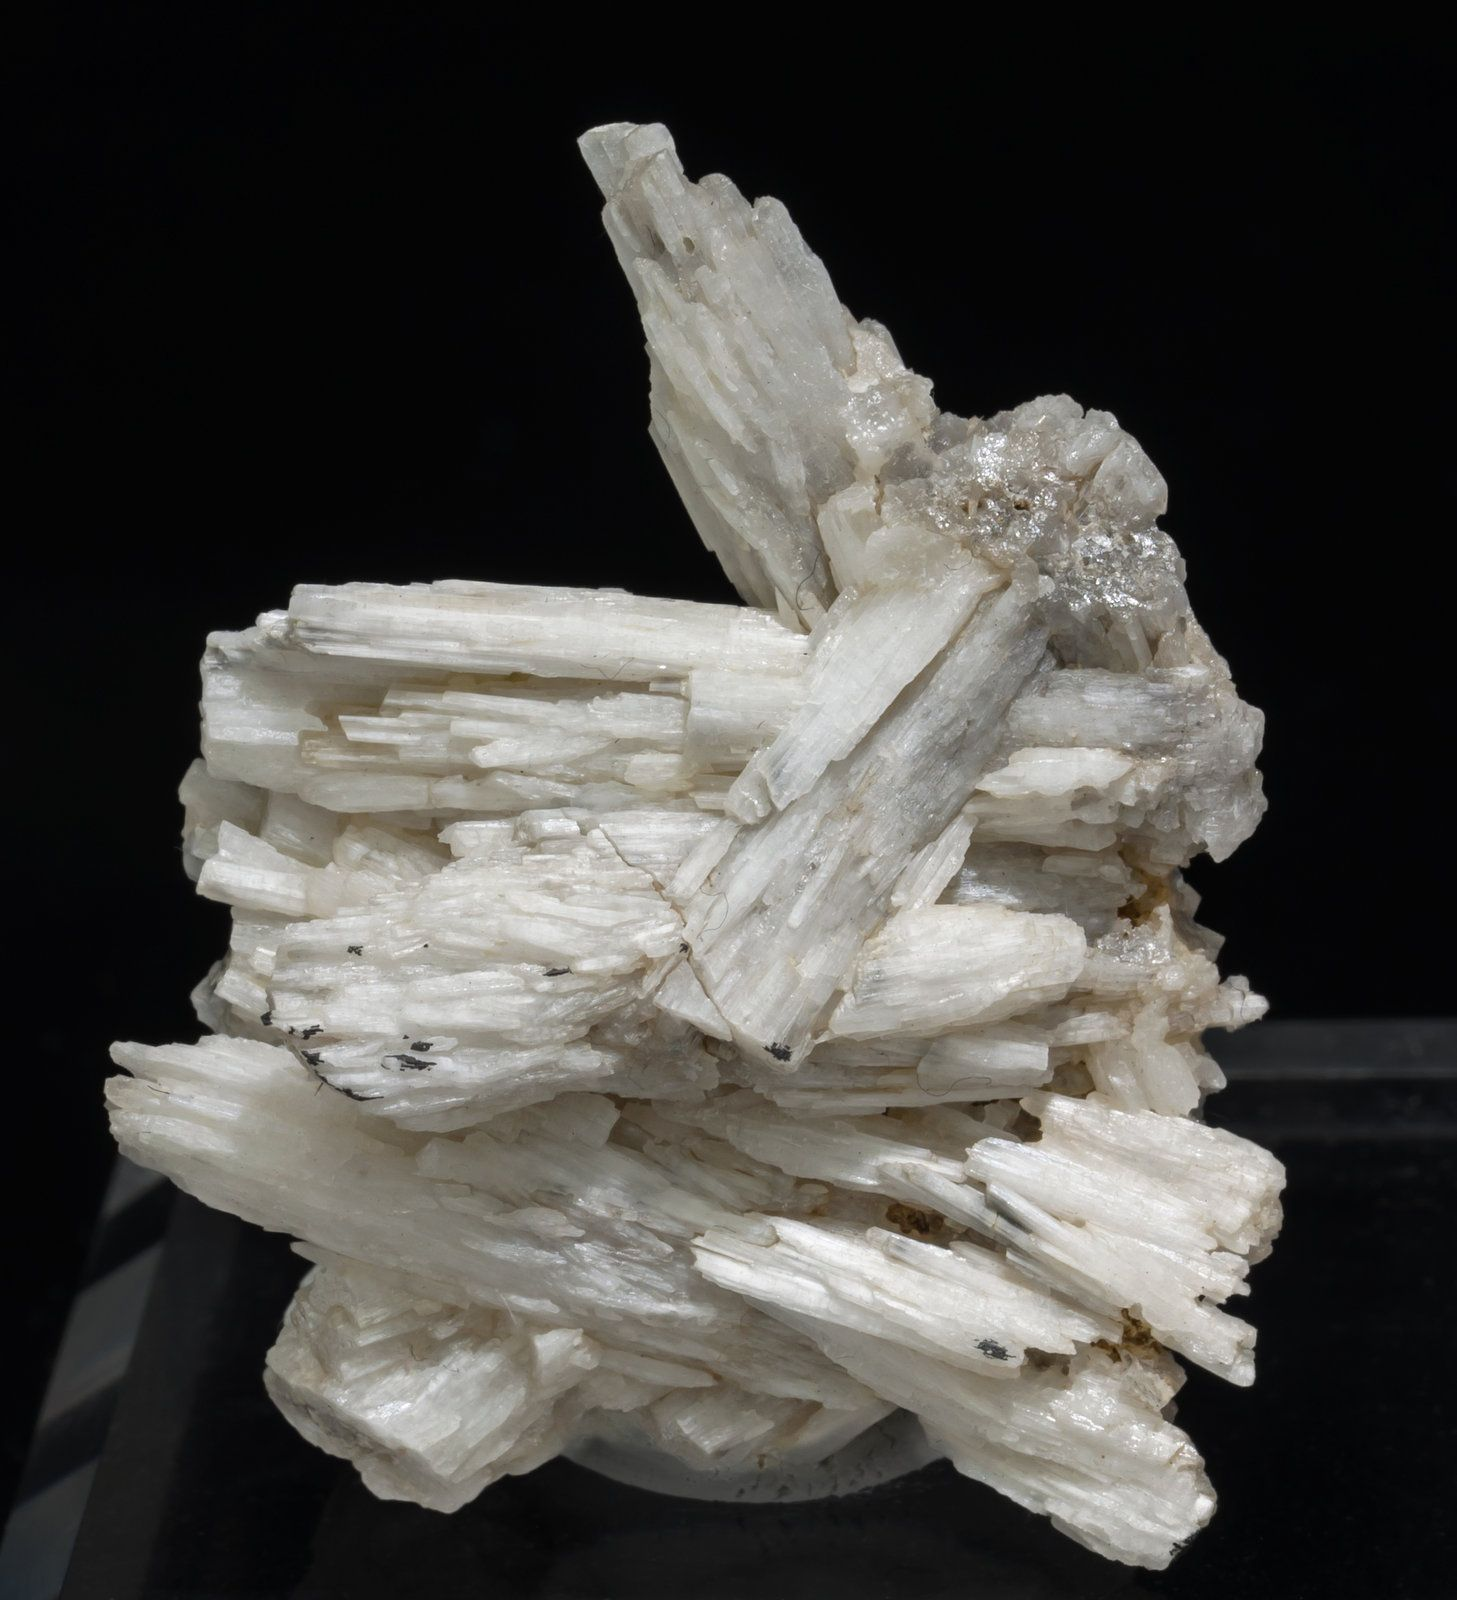 Cerussite, Chaillac Mine, Chaillac, Le Blanc, Indre, Centre-Val de Loire, France. Aggregate of white Cerussite crystals with a silky luster and a  fibrous  appearance